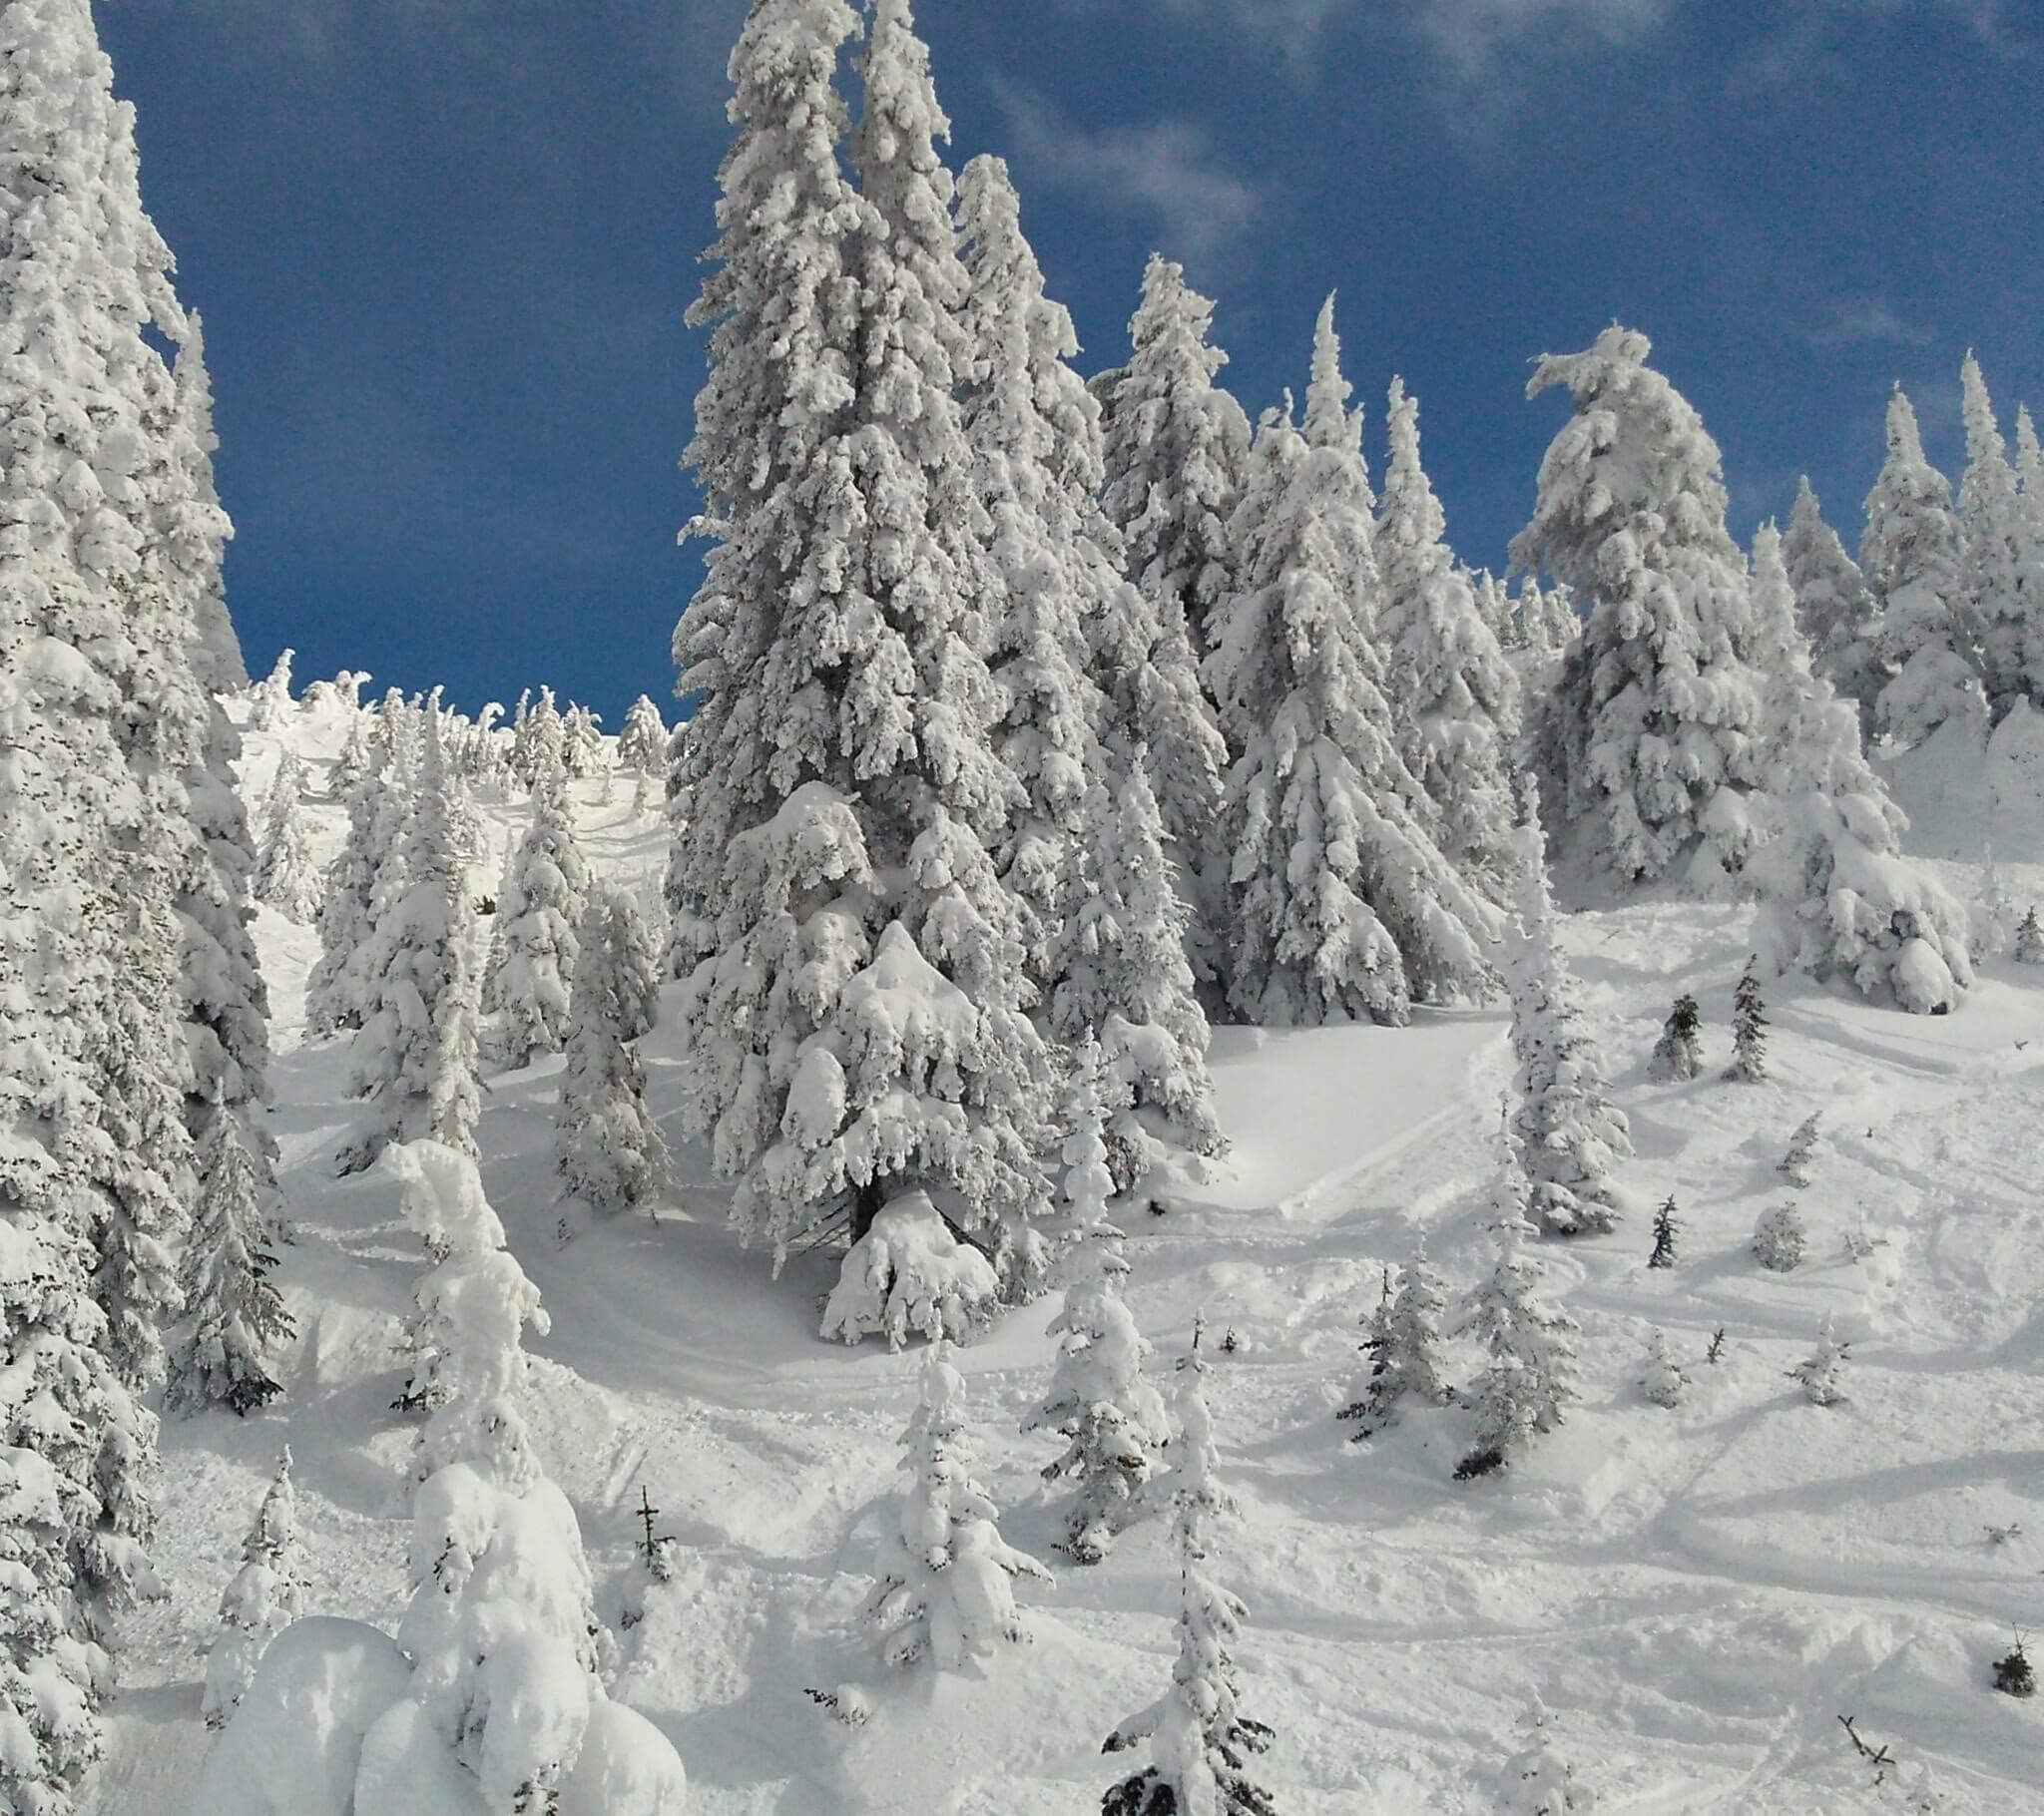 Big White Ski Resort, located 56 kilometers Southeast of Kelowna, is the third largest resort in BC and a skier's paradise.